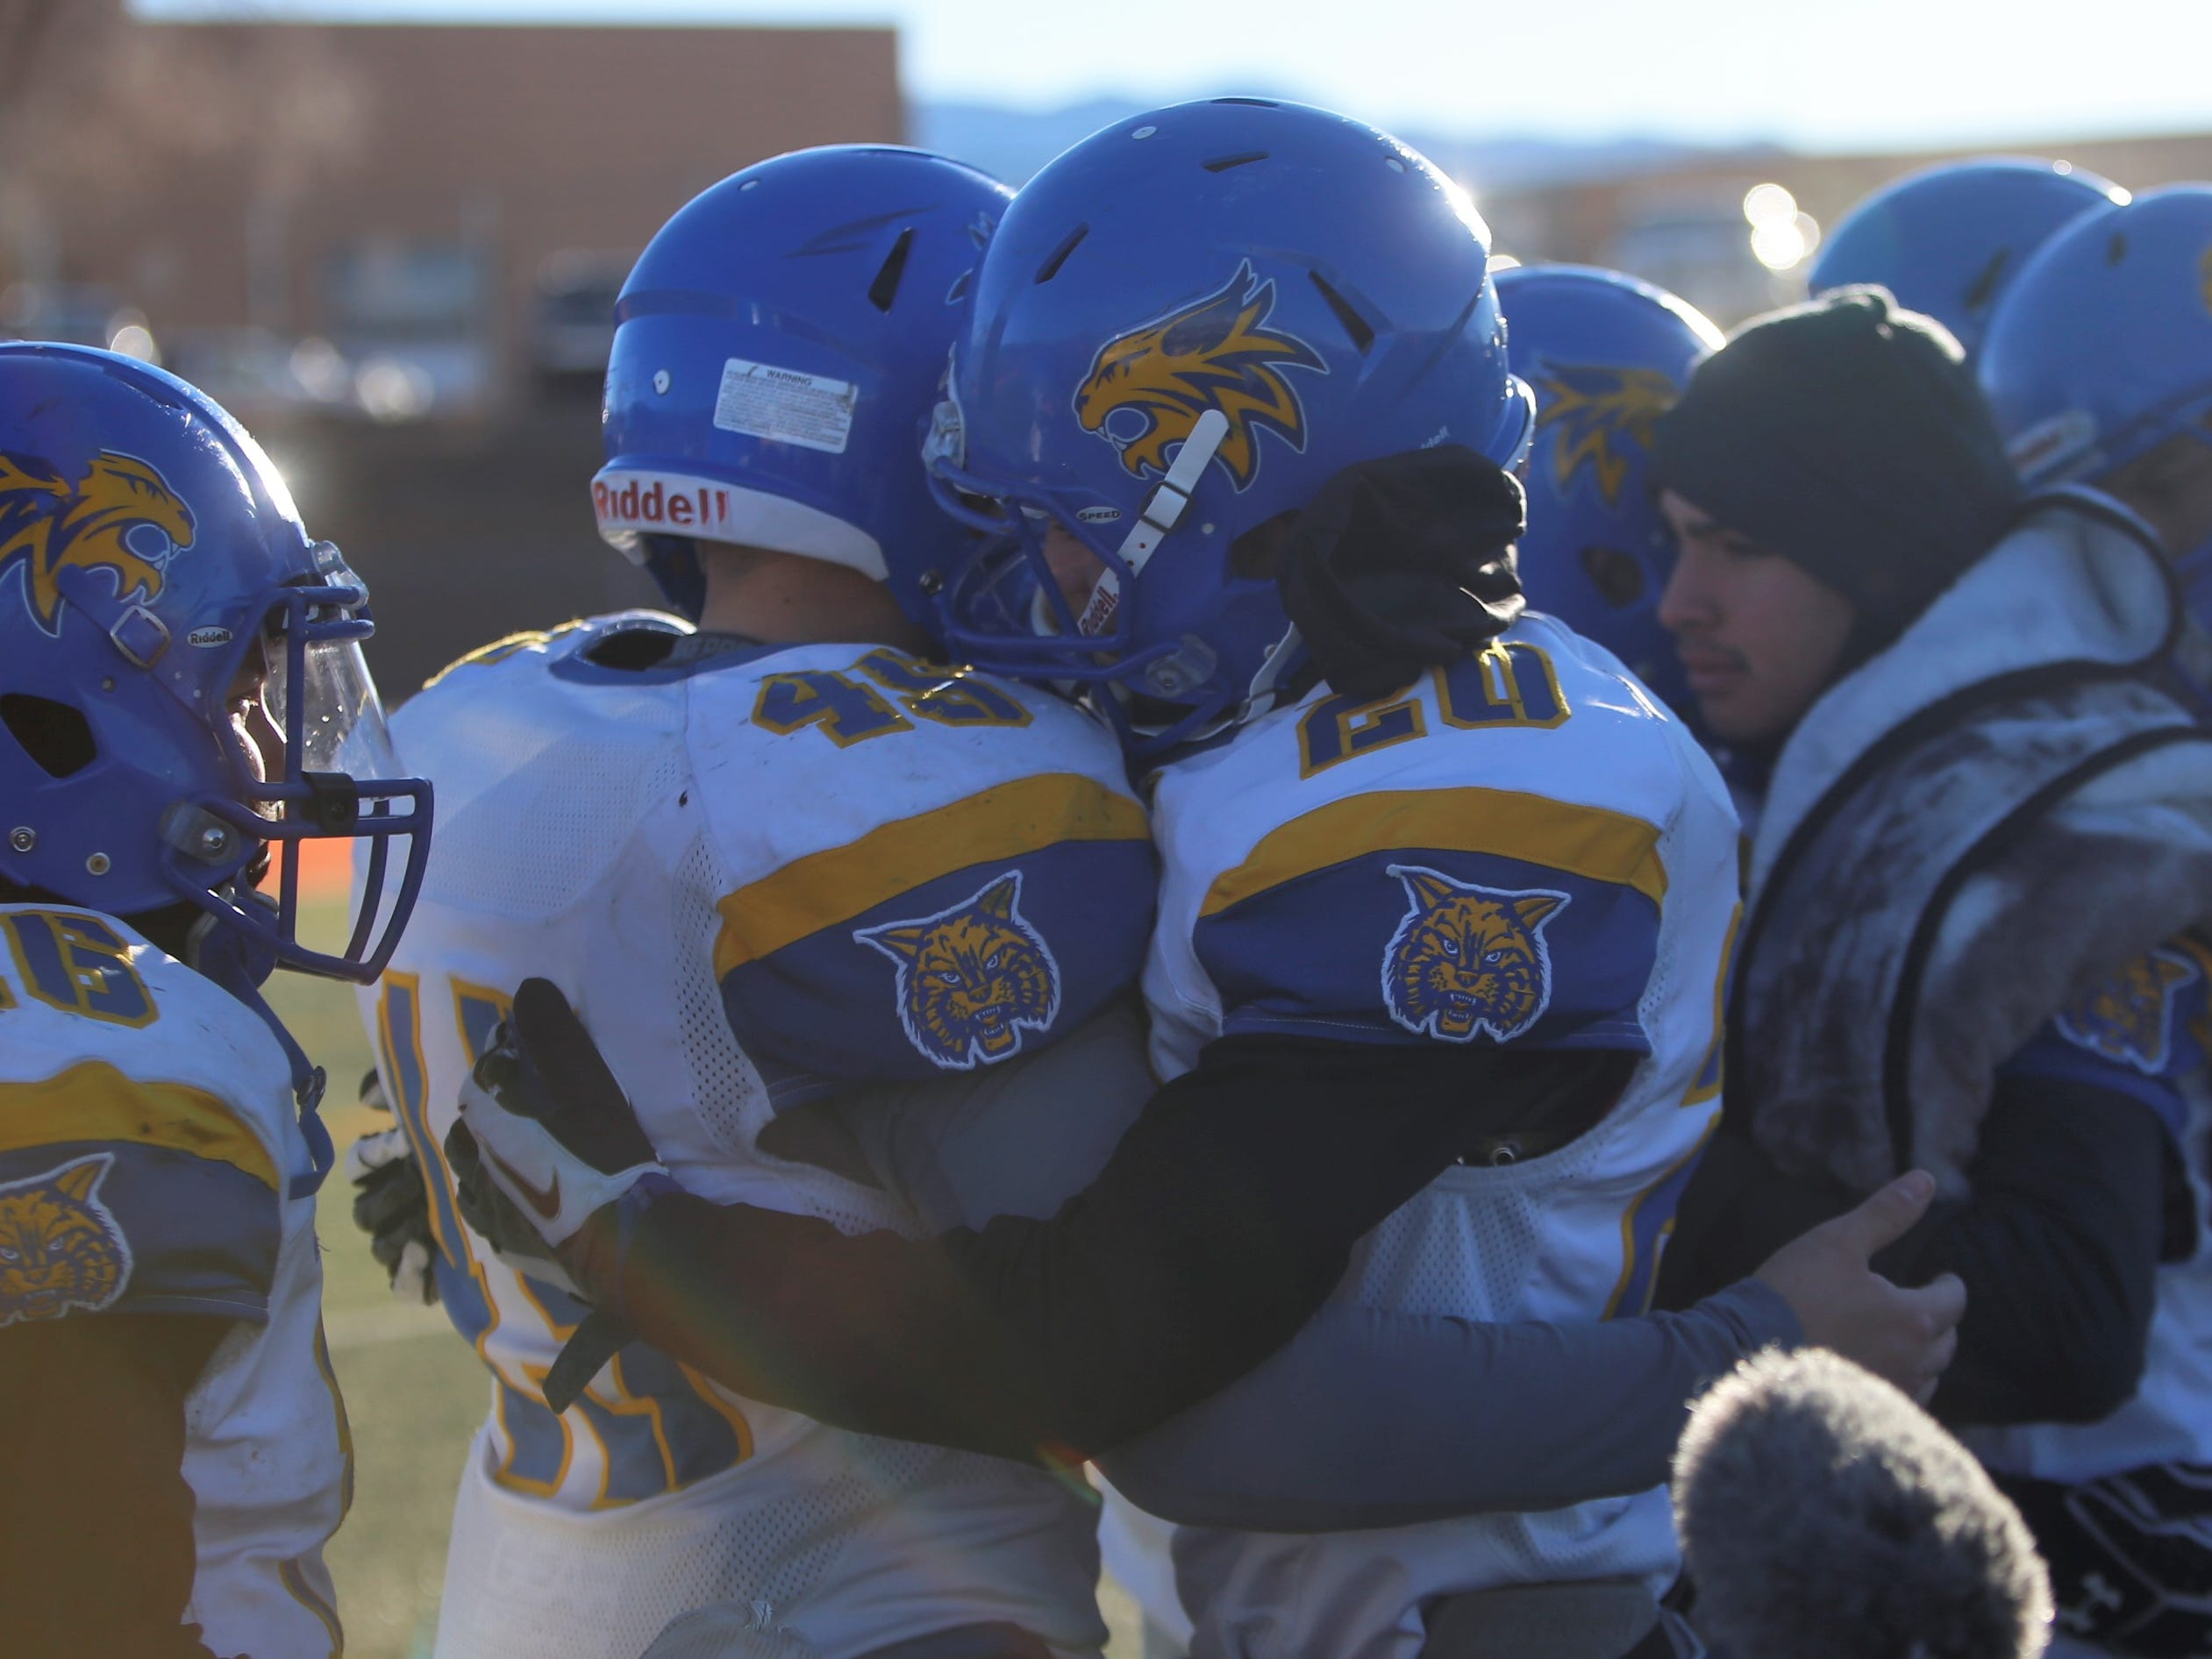 Bloomfield's Anthony Gonzales (20) comforts teammate Angelo Atencio (45) following the Bobcats' 14-7 4A state championship game loss Saturday at Taos. BHS made the state finals for the first time since 1990.